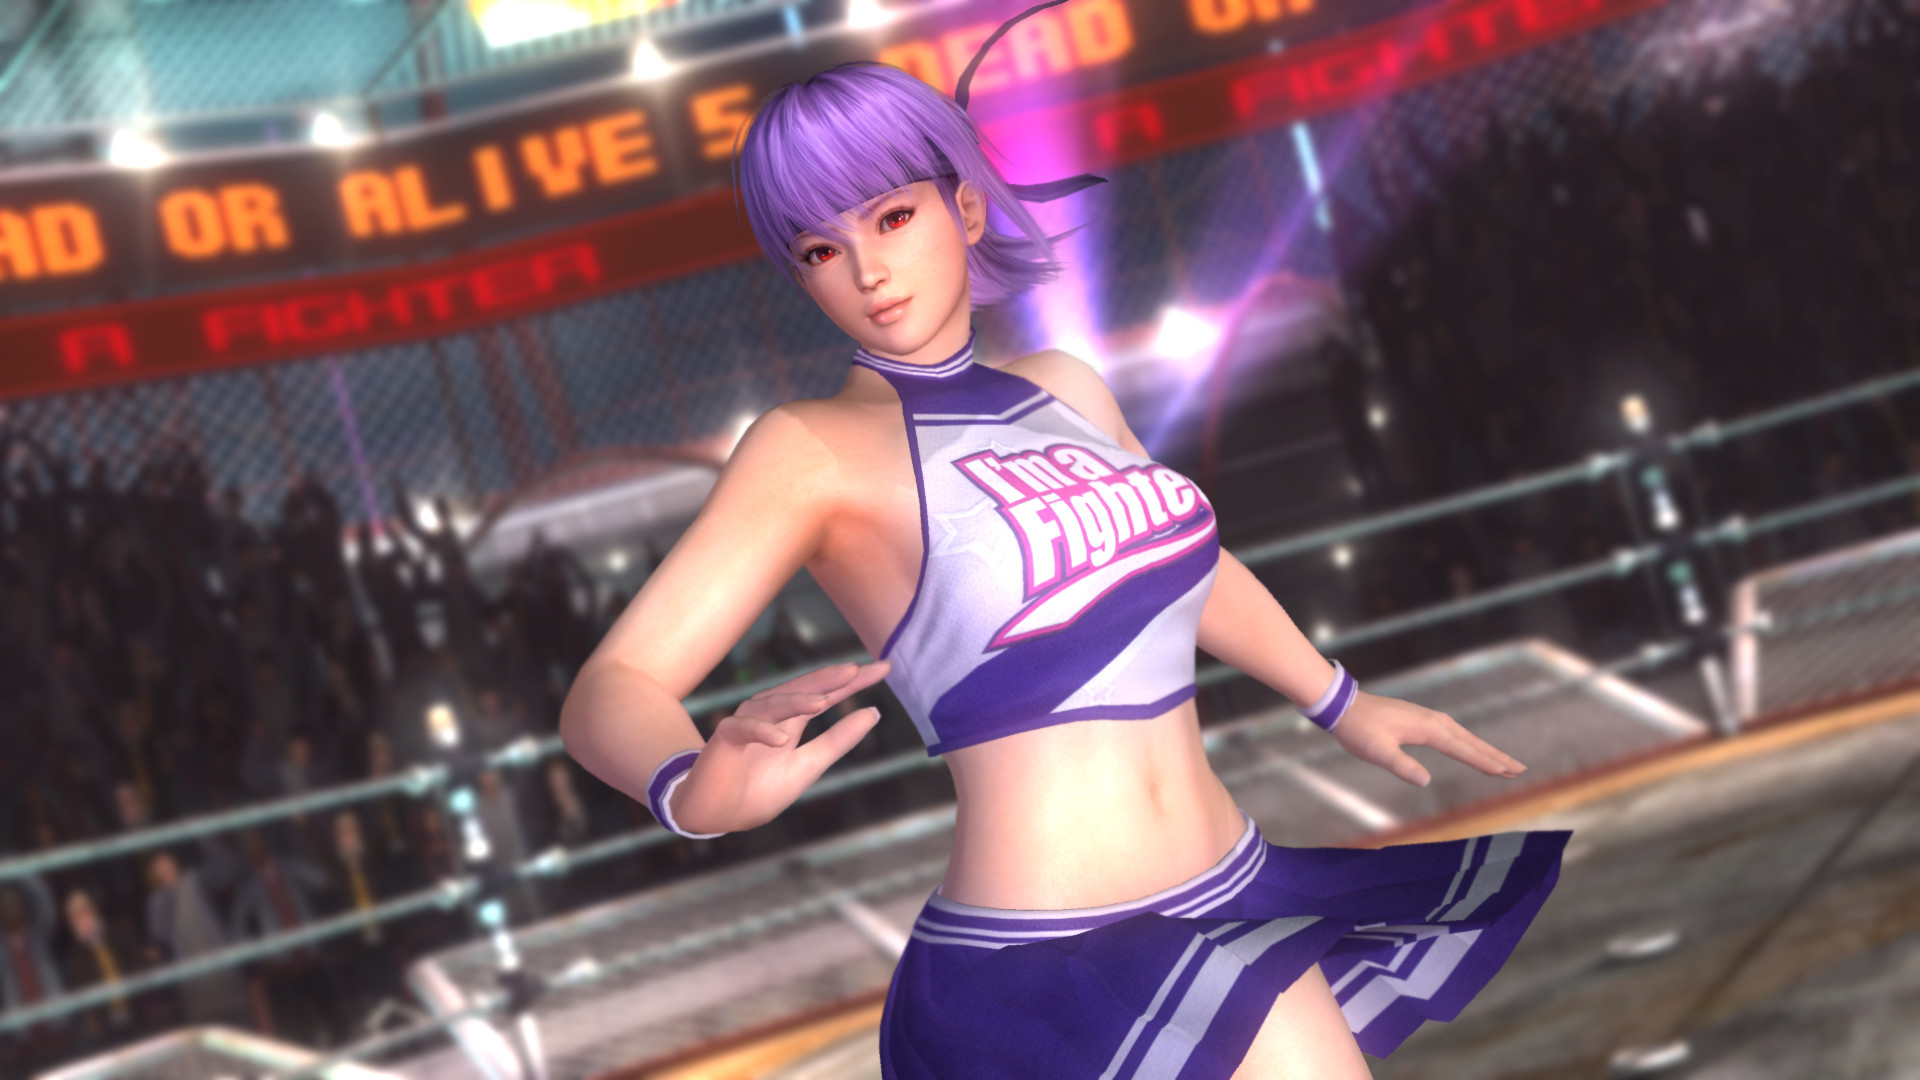 1920x1080 Ayane images Dead or Alive 5 | Ayane HD wallpaper and background photos